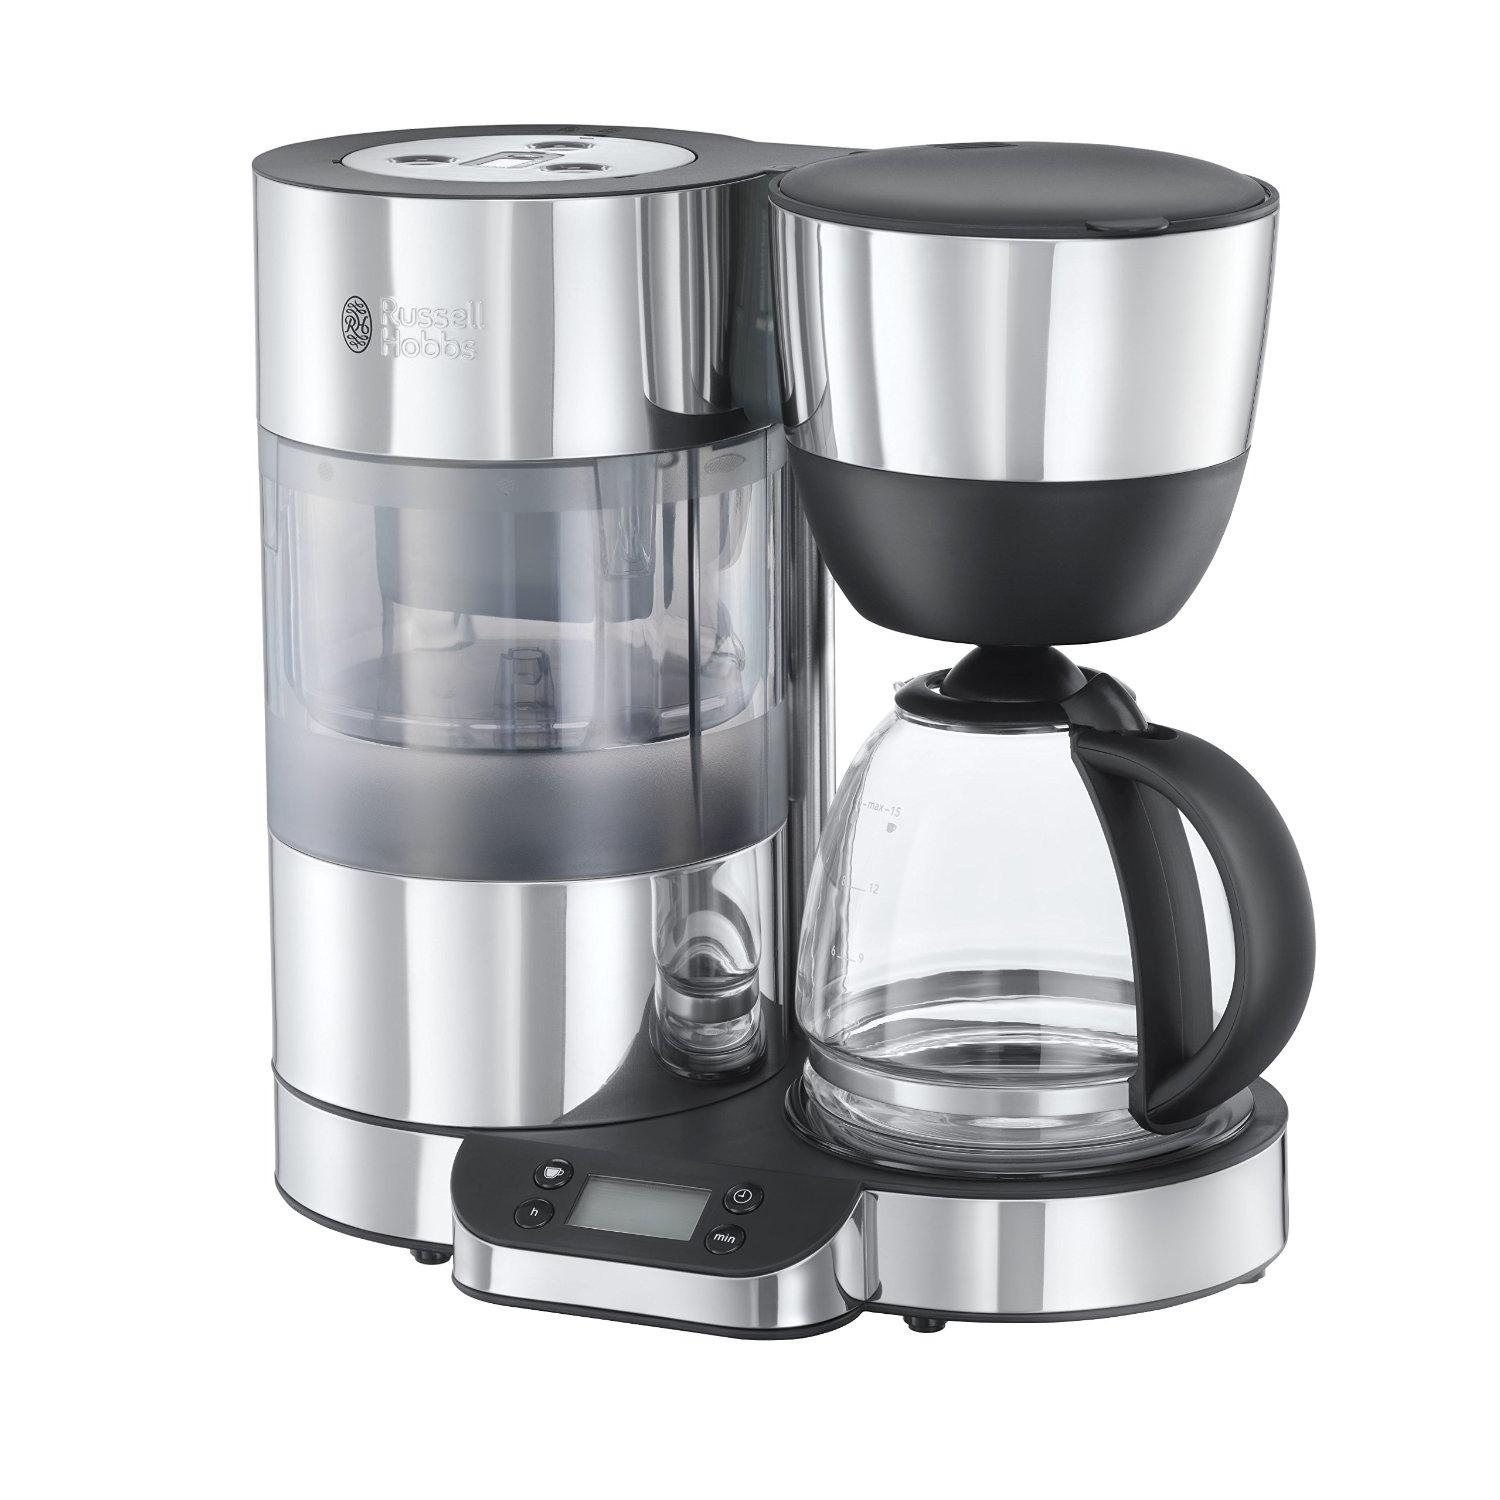 Russell hobbs - 20770 - Cafetière Clarity 1,25L 950 W